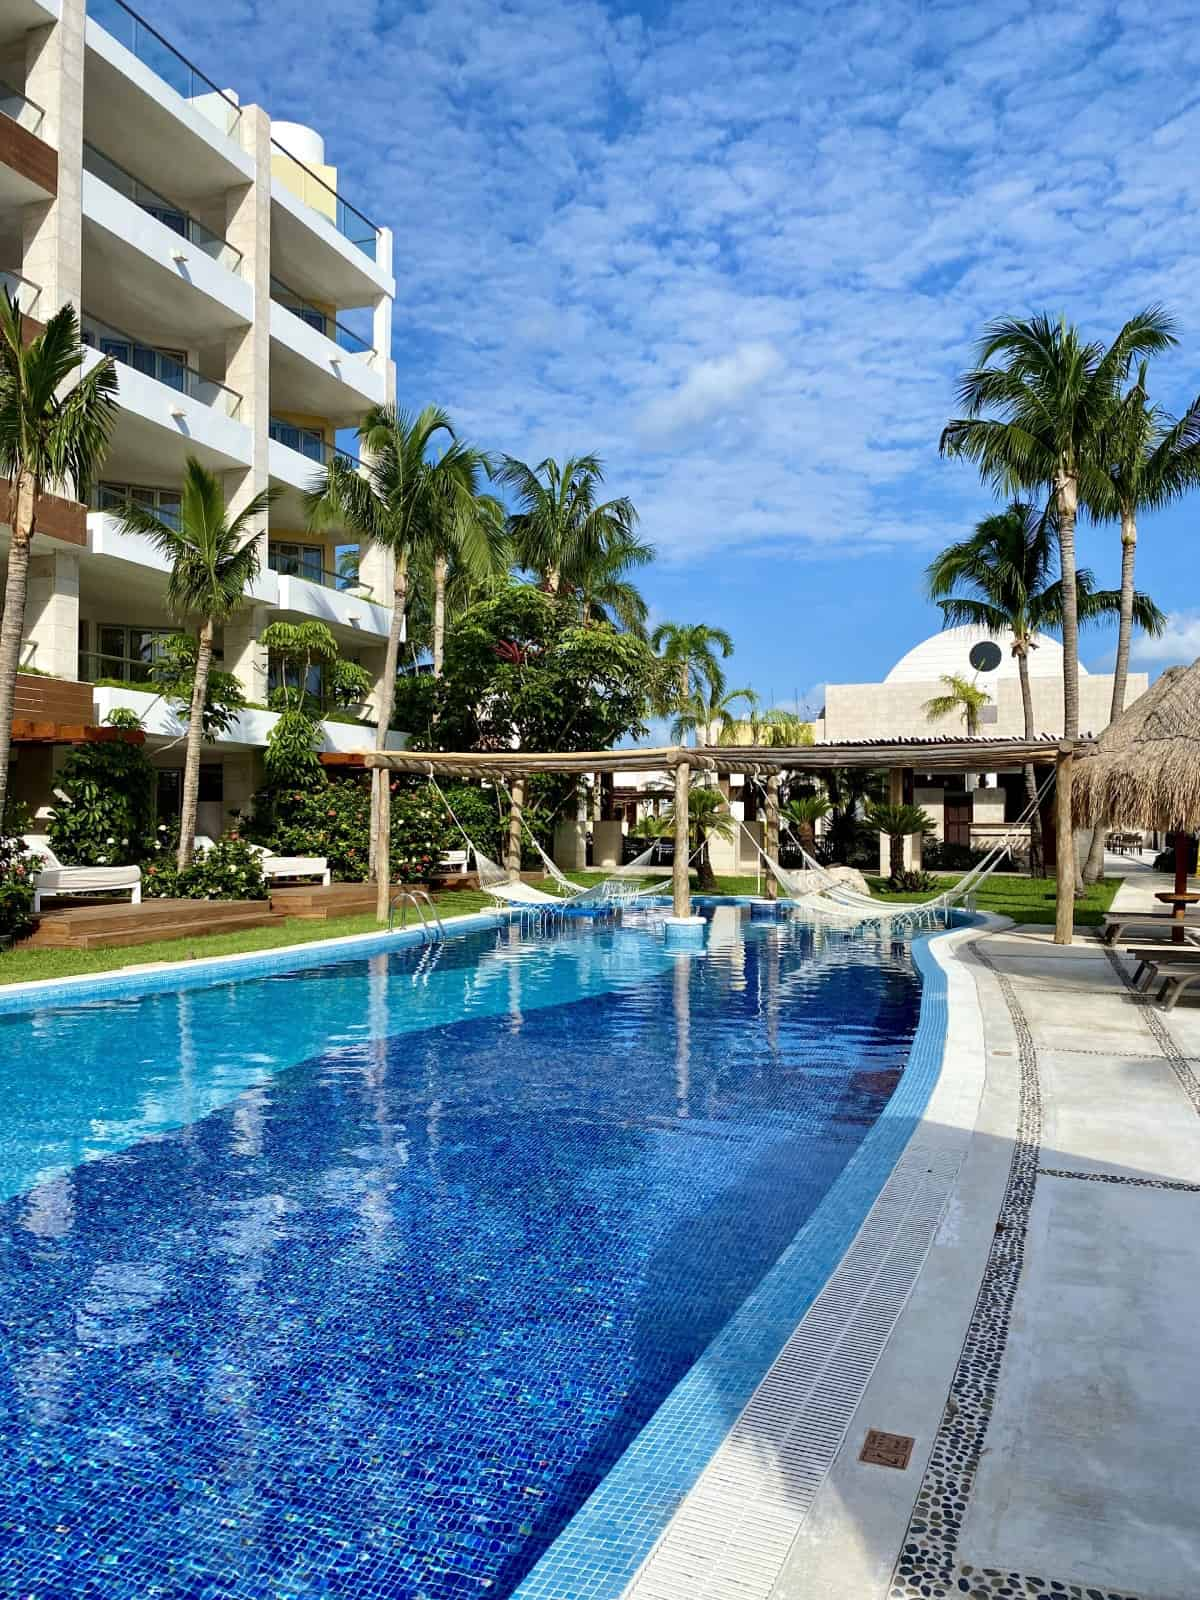 Gorgeous pools and hammocks at Excellence Playa Mujeres